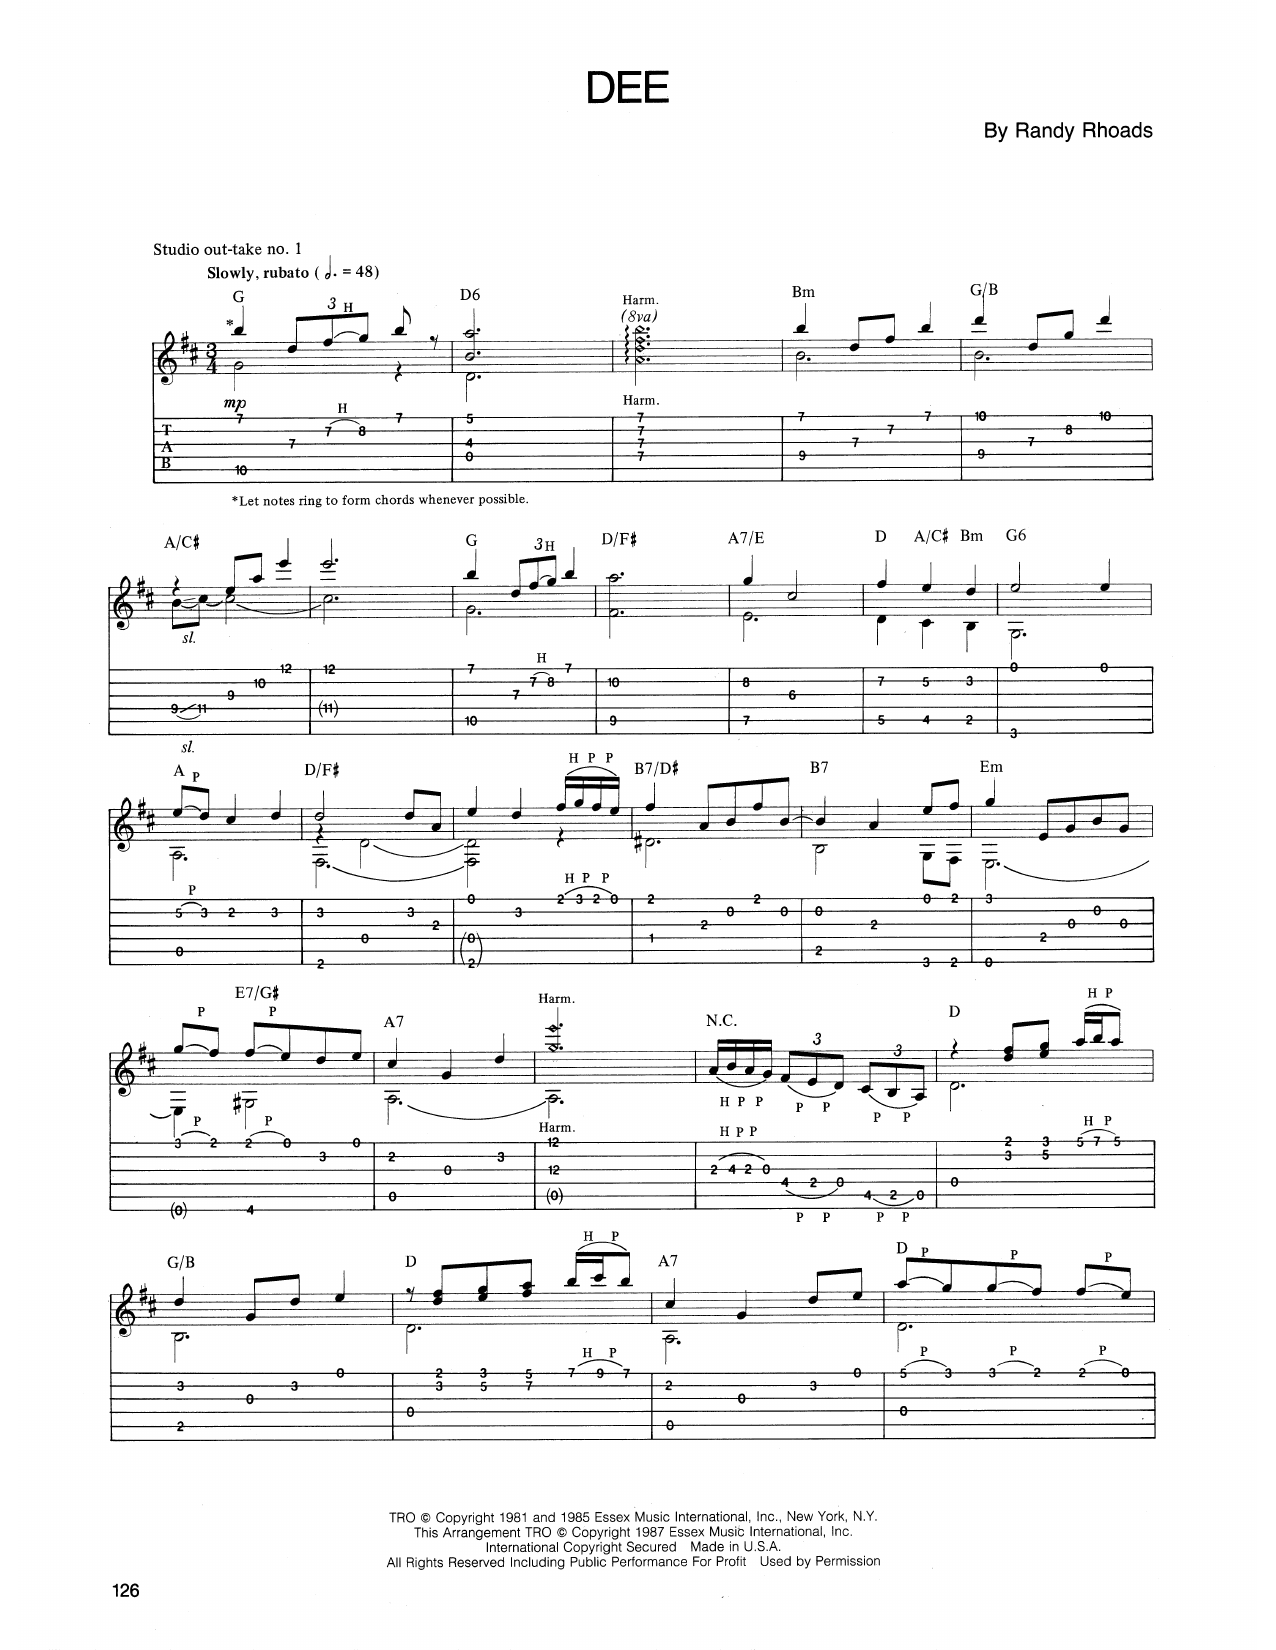 Ozzy Osbourne Dee sheet music notes and chords. Download Printable PDF.